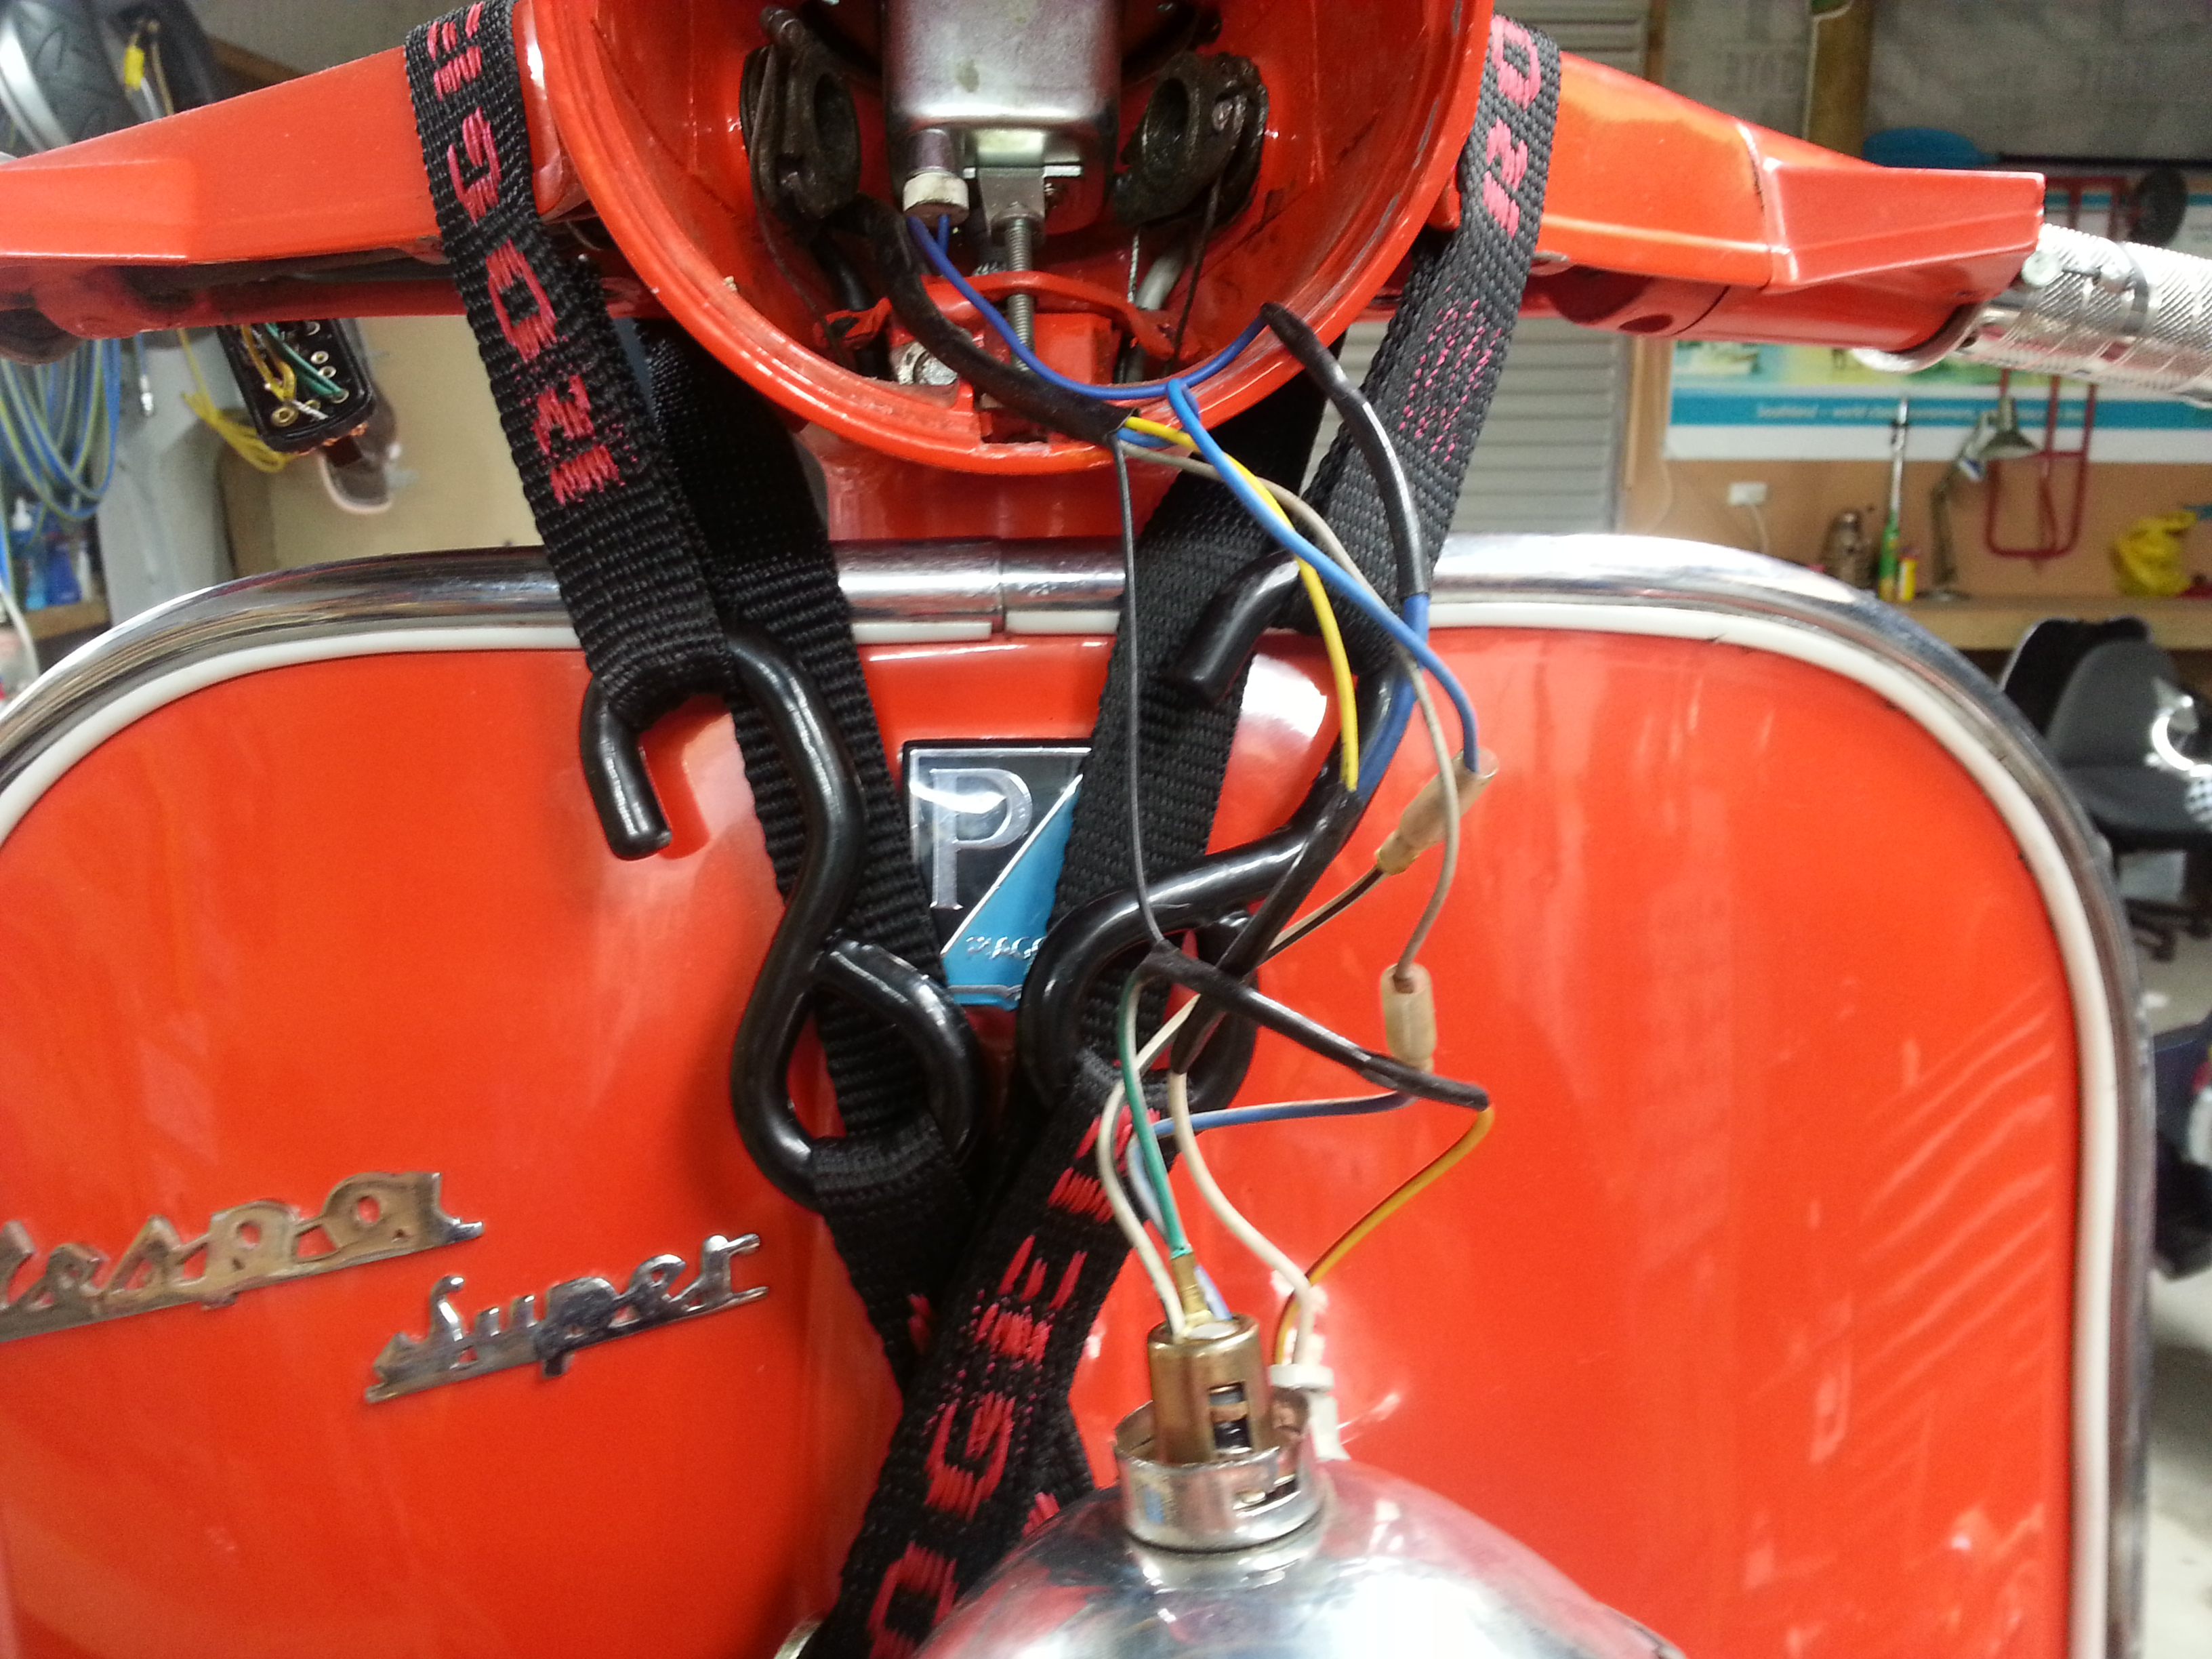 Mrs Jcs Super Southern Scoot Vespa Vba Wiring Diagram I Have Been Following A From The Scooterhelp Website Using New Light Switch And Some Relays To Get Electric Start Rest Of